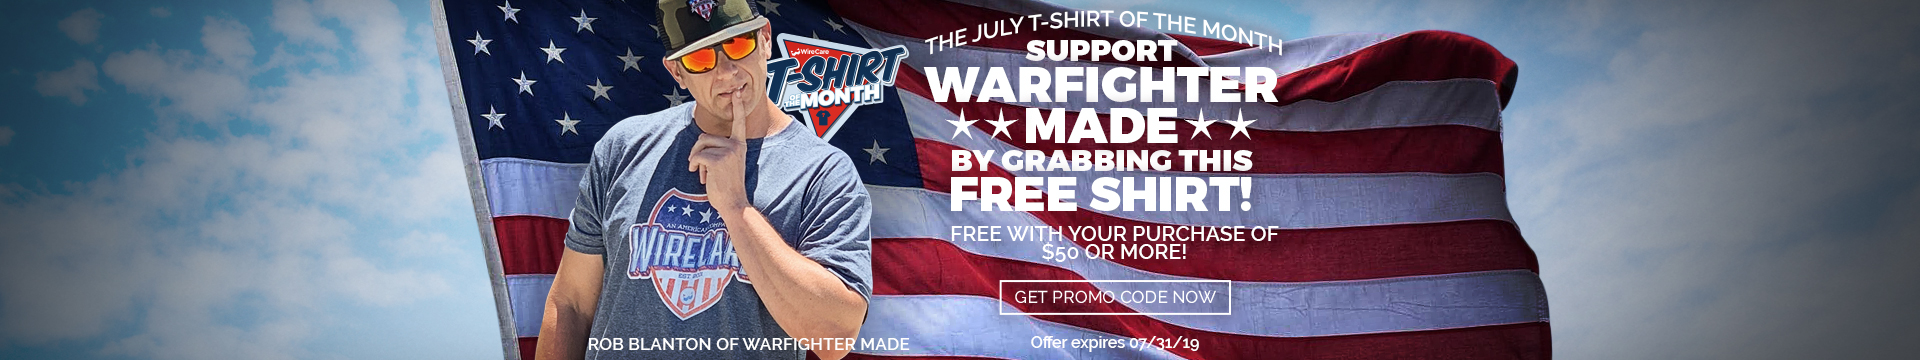 T-shirt of the Month and Warfighter Made